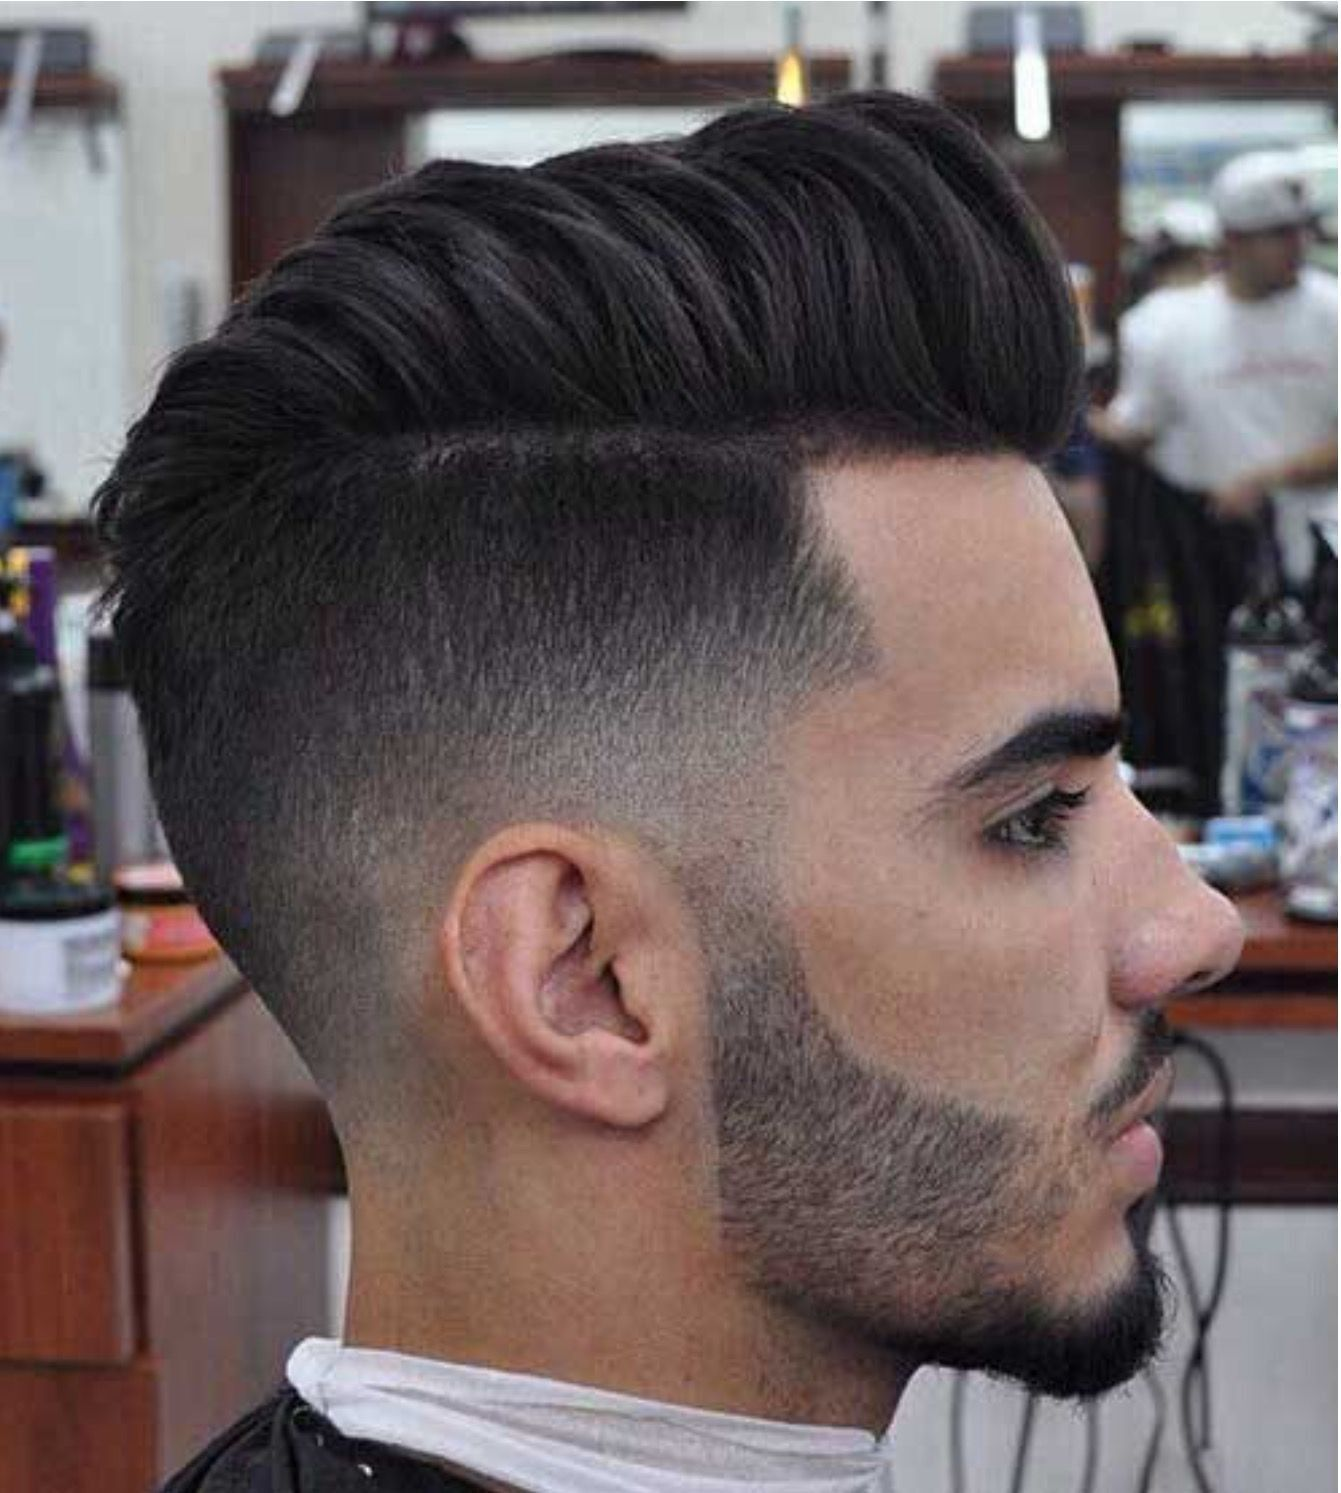 Trendy men haircuts hairstyle pompadour modern  best hair style men  pinterest  hair